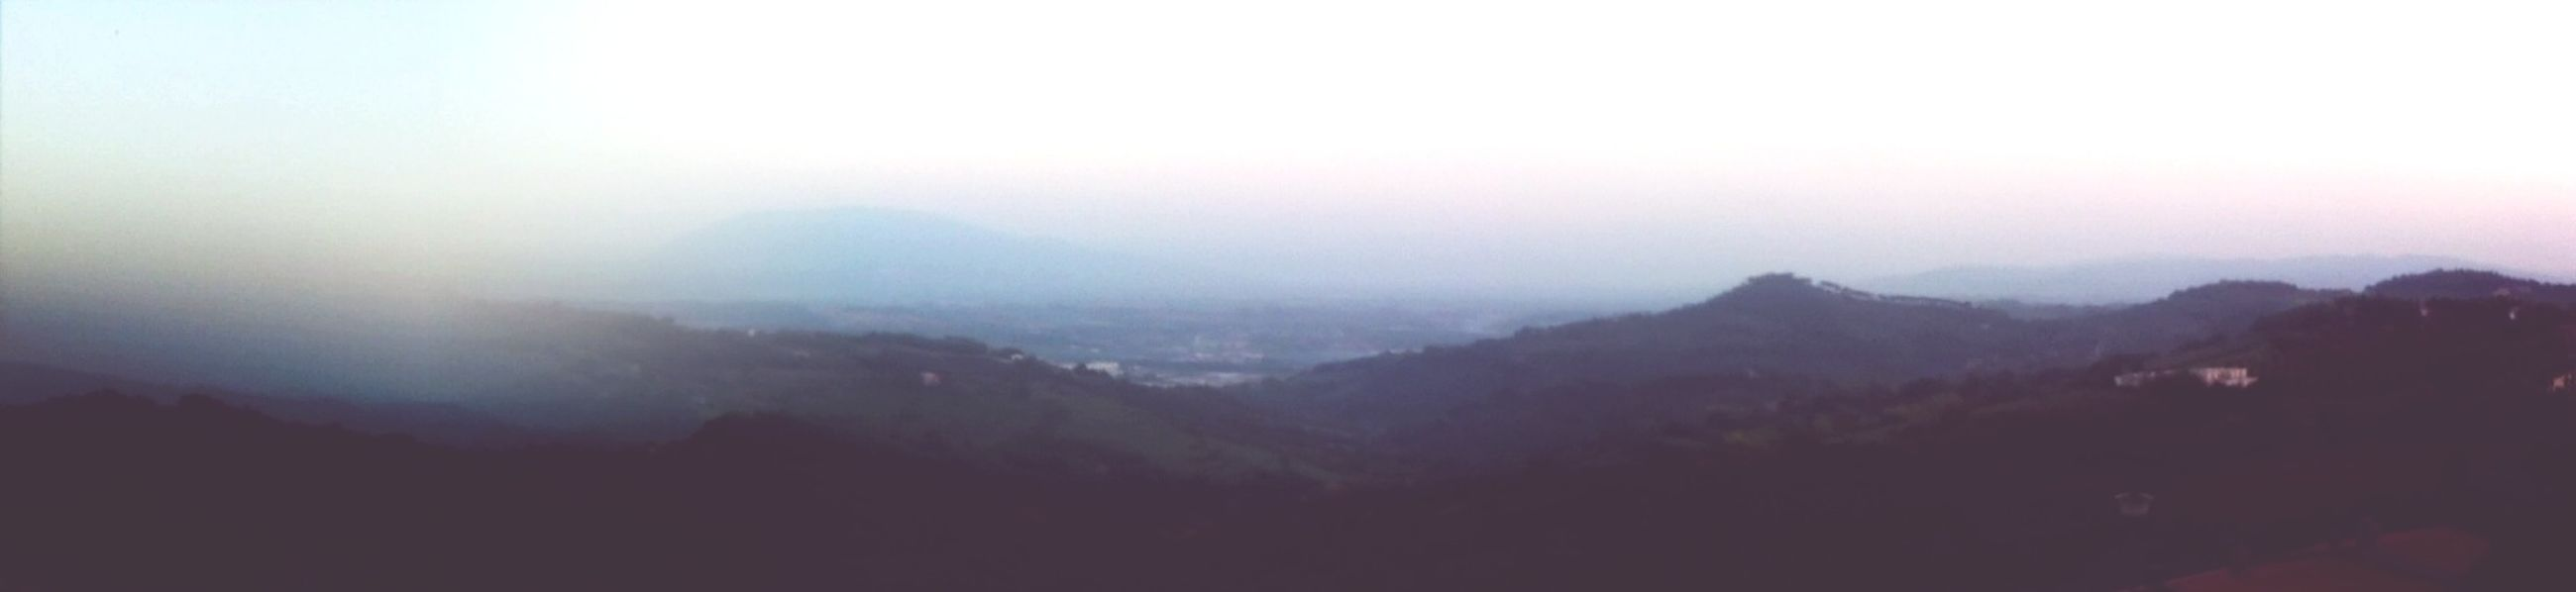 mountain, fog, tranquil scene, scenics, tranquility, beauty in nature, mountain range, foggy, landscape, nature, copy space, sky, idyllic, silhouette, weather, tree, non-urban scene, outdoors, no people